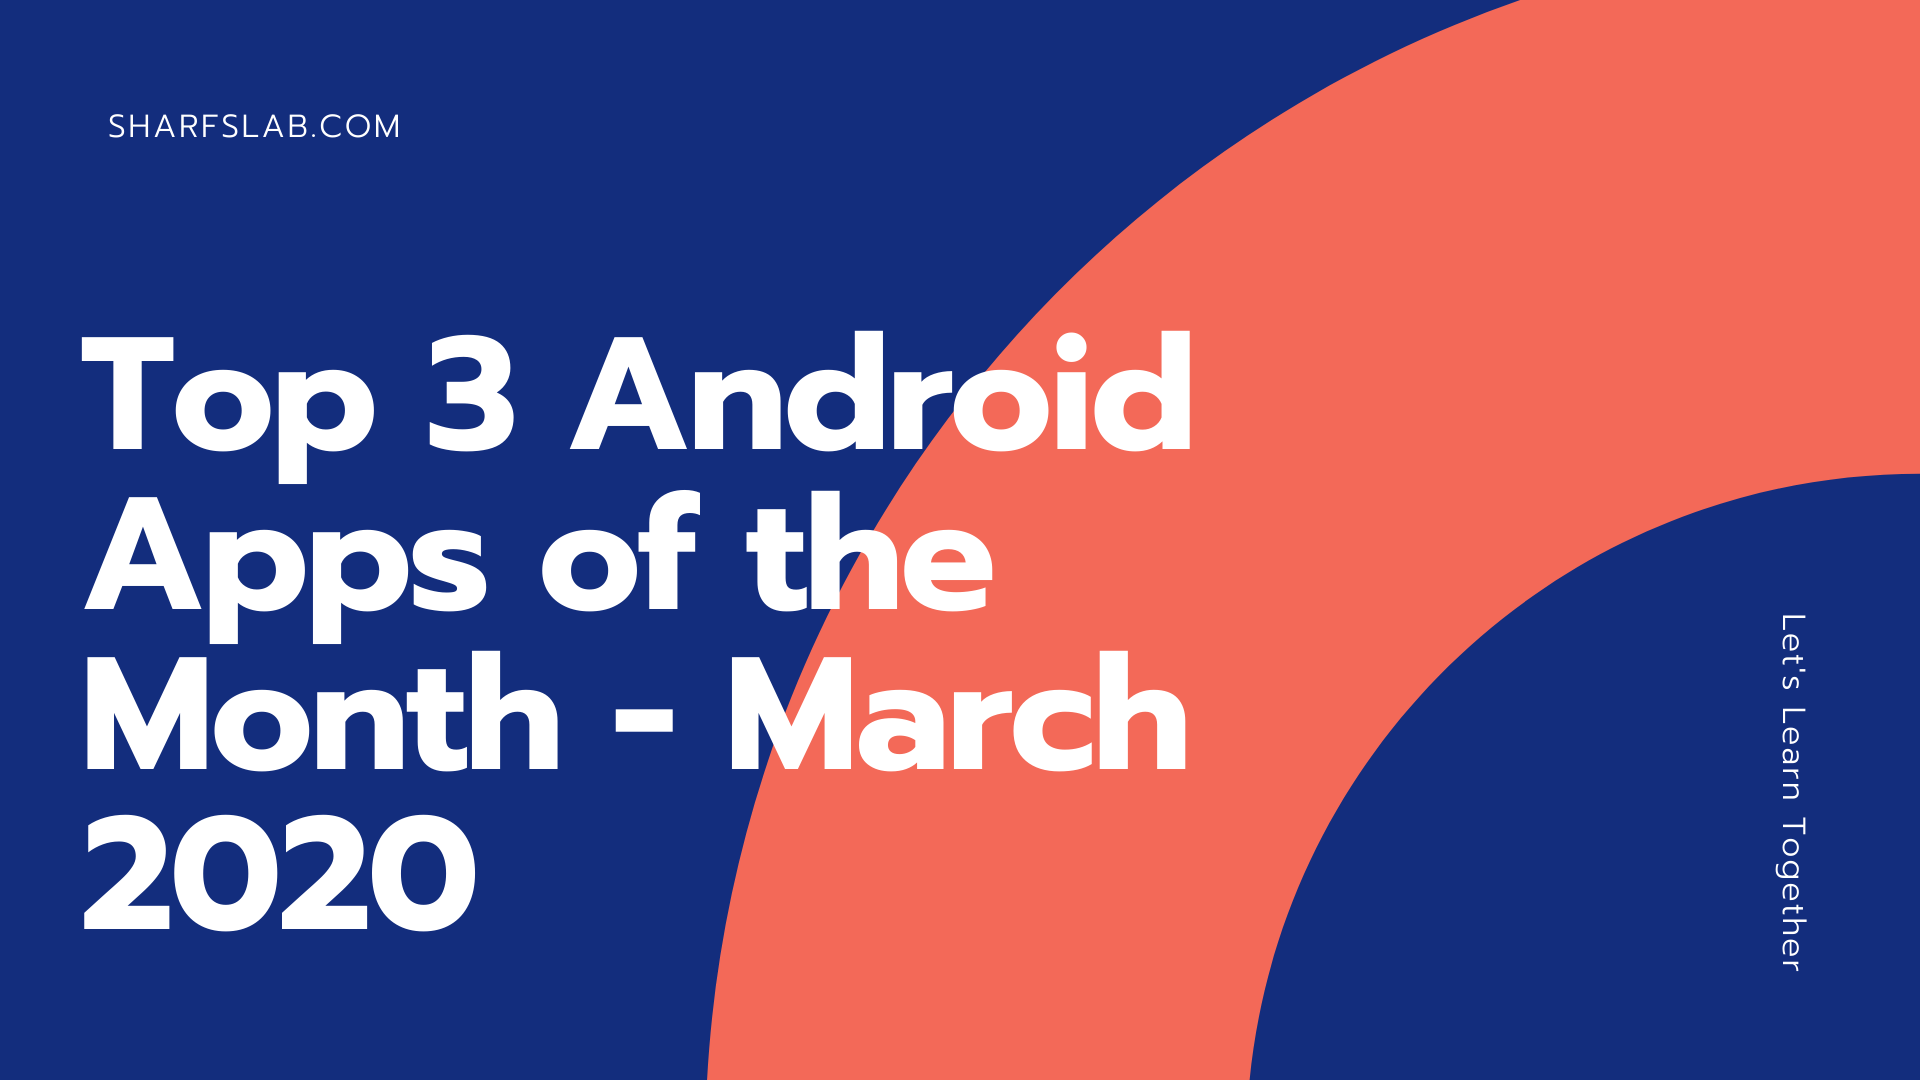 Top 3 Android Apps of the Month - March 2020